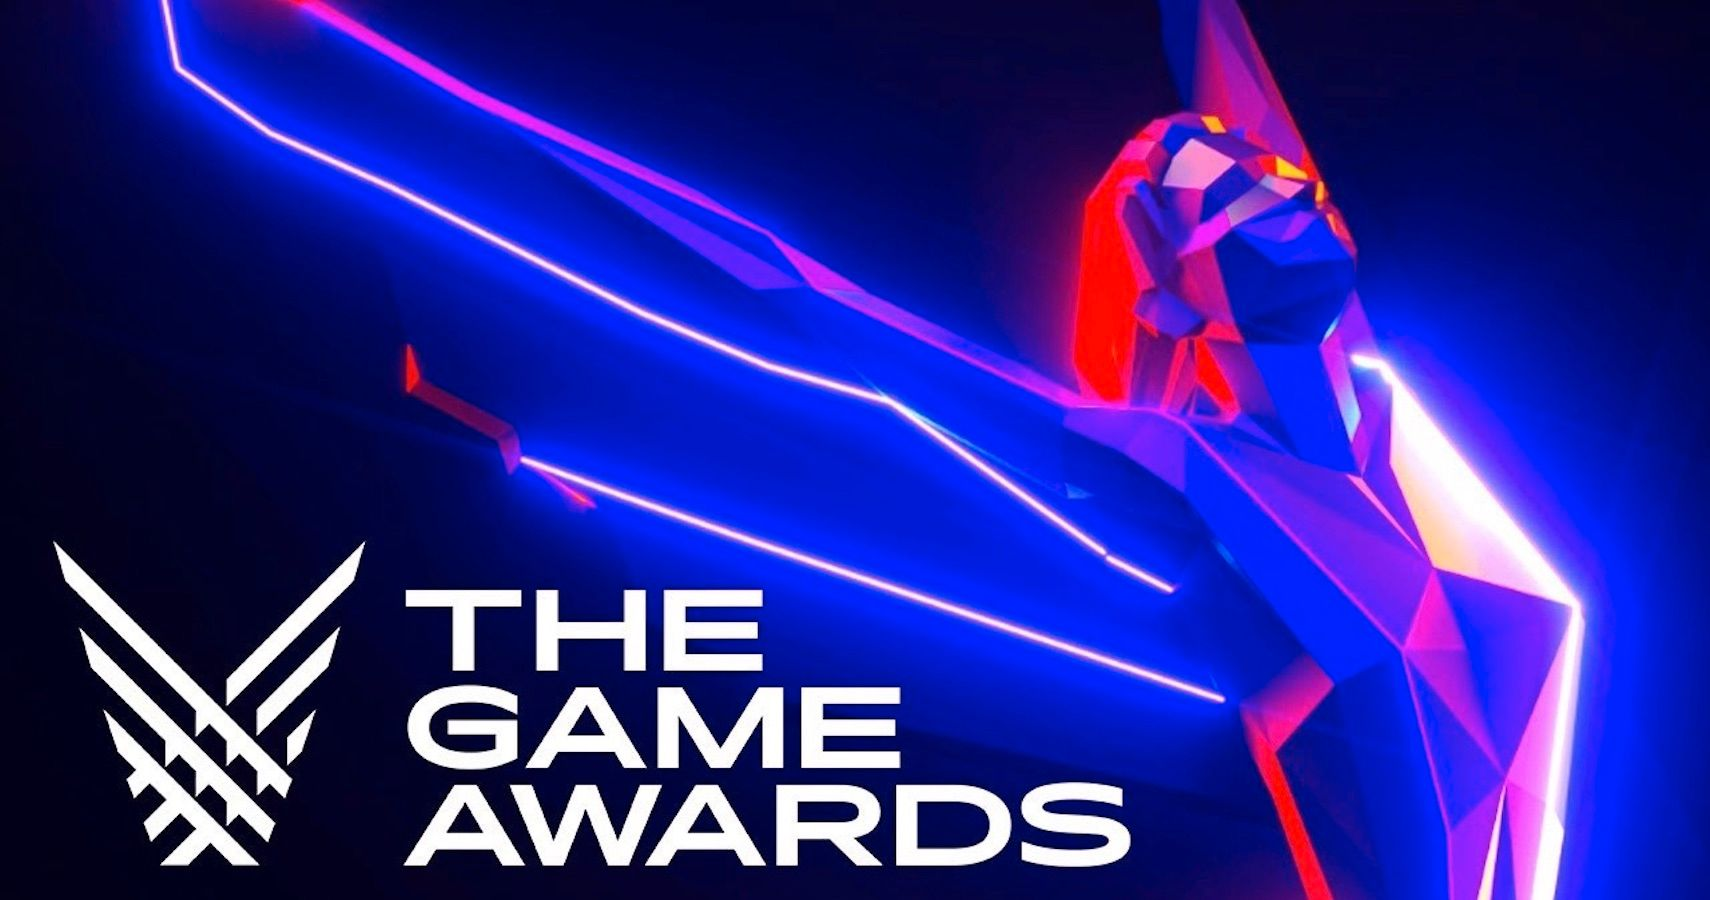 The Game Awards Return On December 10, 2020